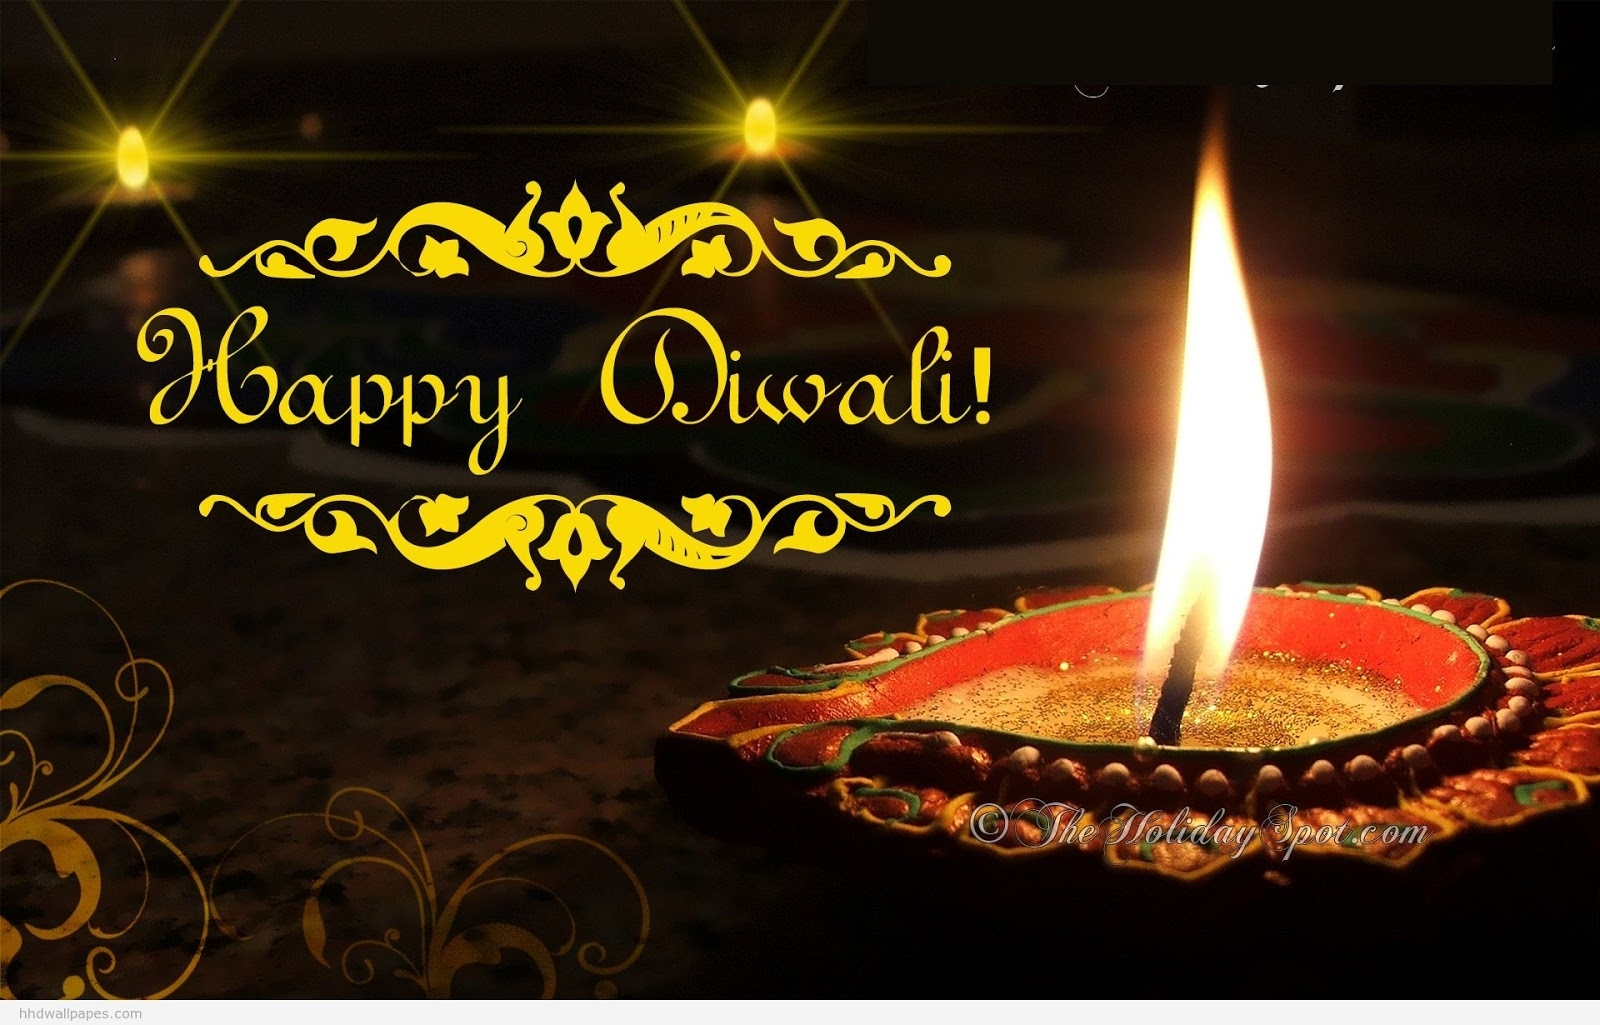 2017 latest happy diwali images wallpapers (full hd) & messages